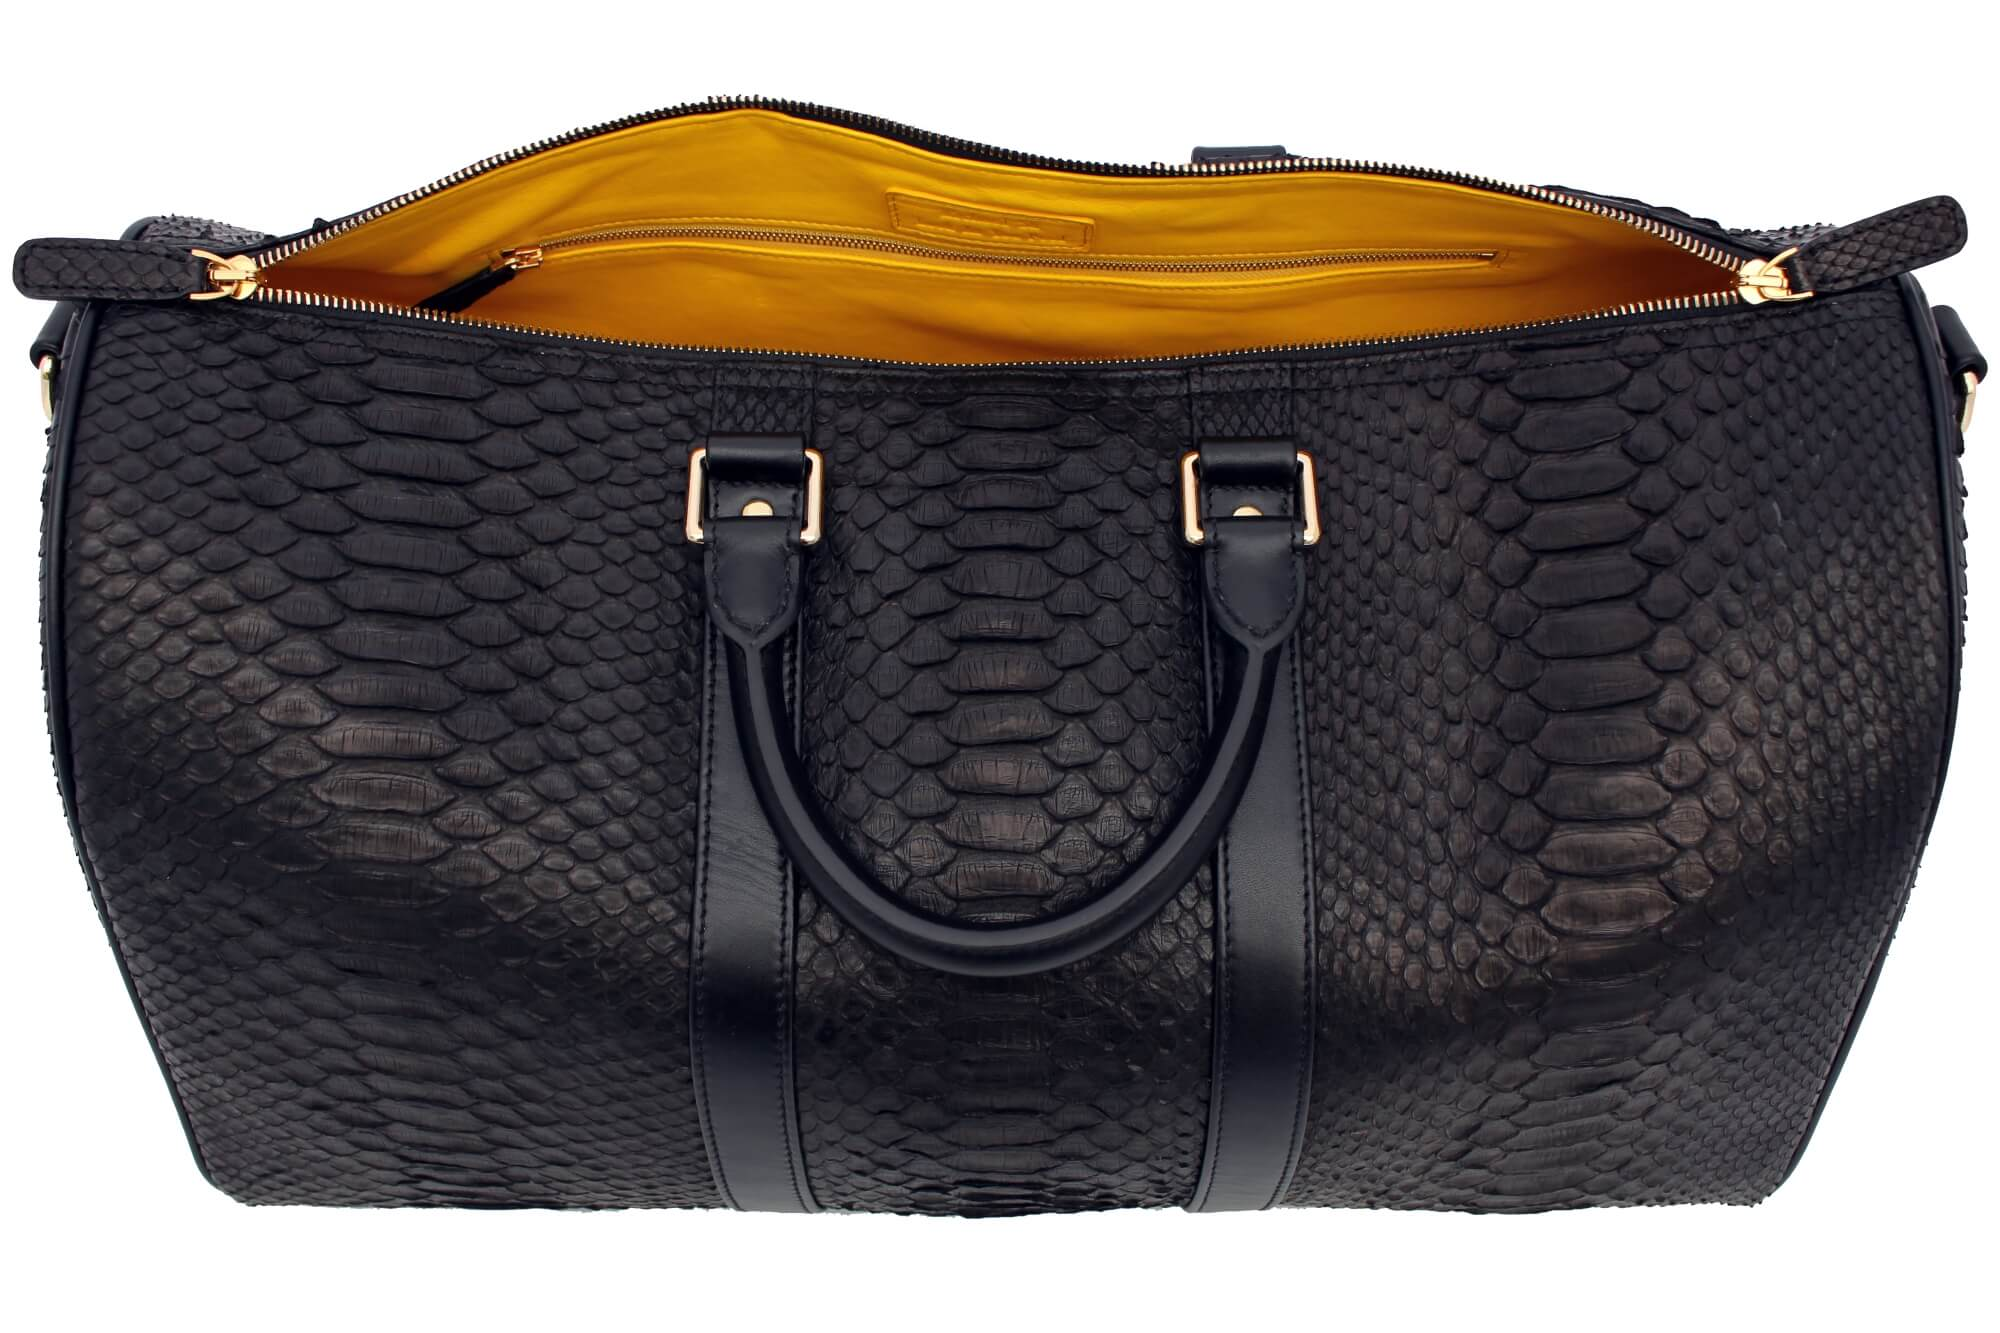 Yellow Leather Python Duffle Bag